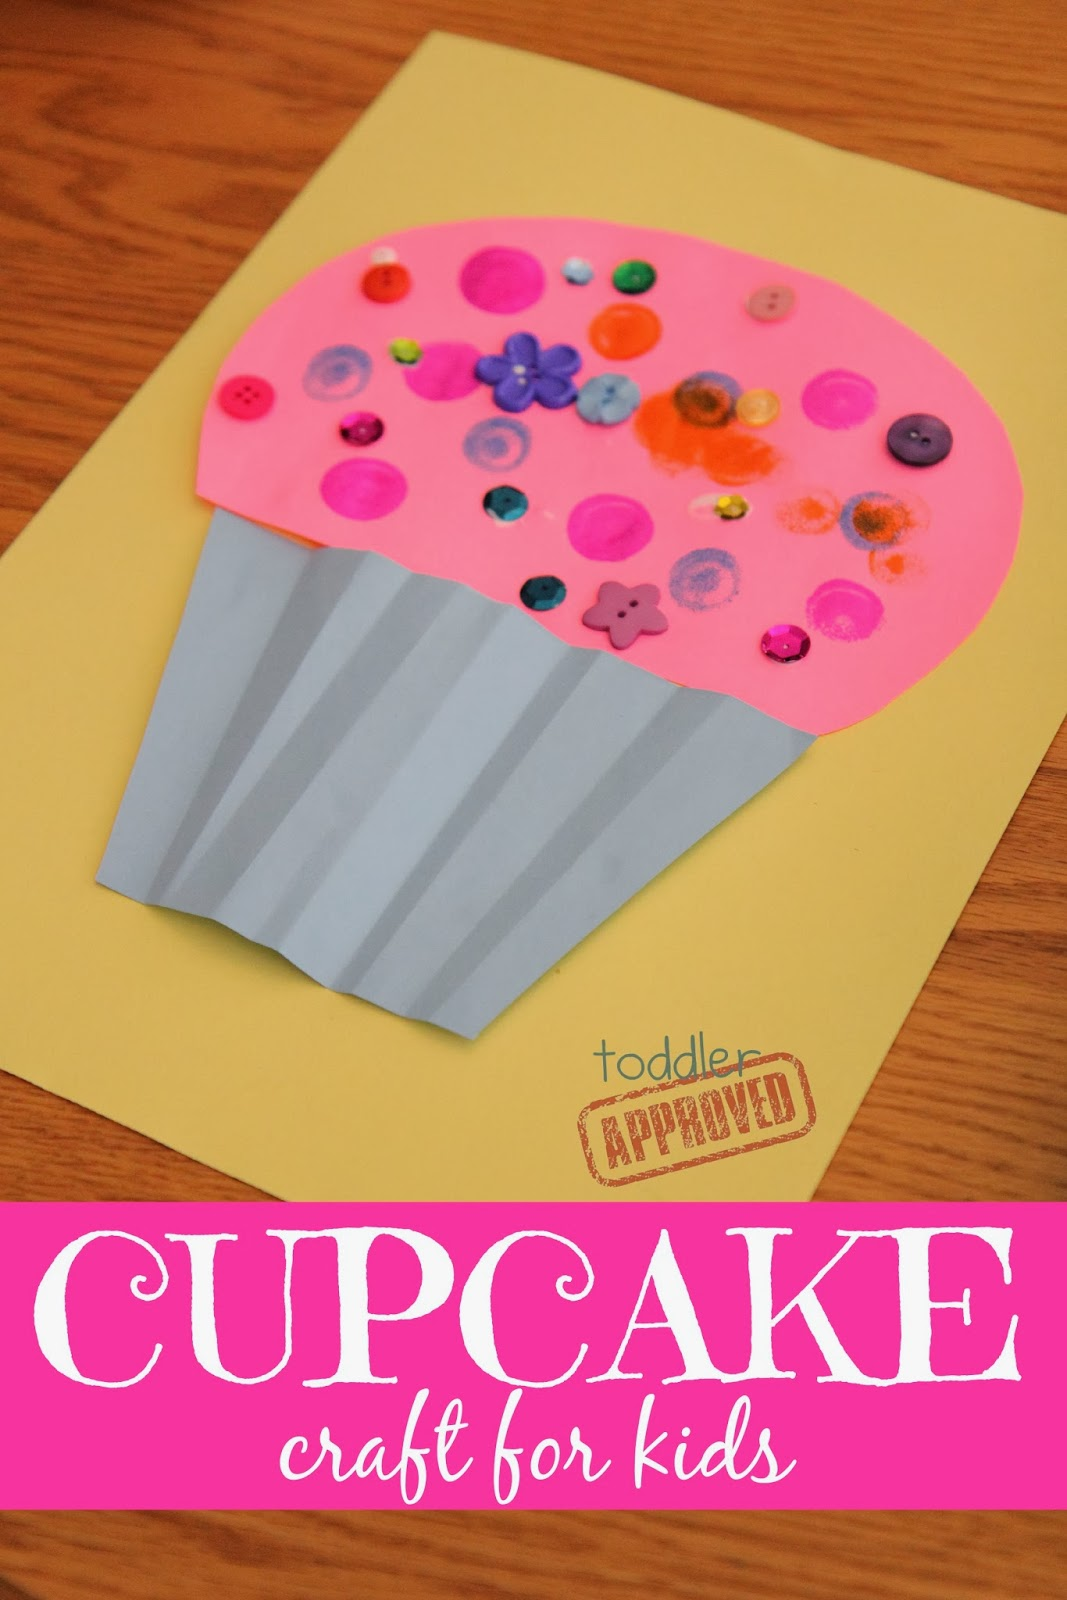 Birthday Cake Art And Craft : Toddler Approved!: Cupcake Craft for Kids {Laura Numeroff ...